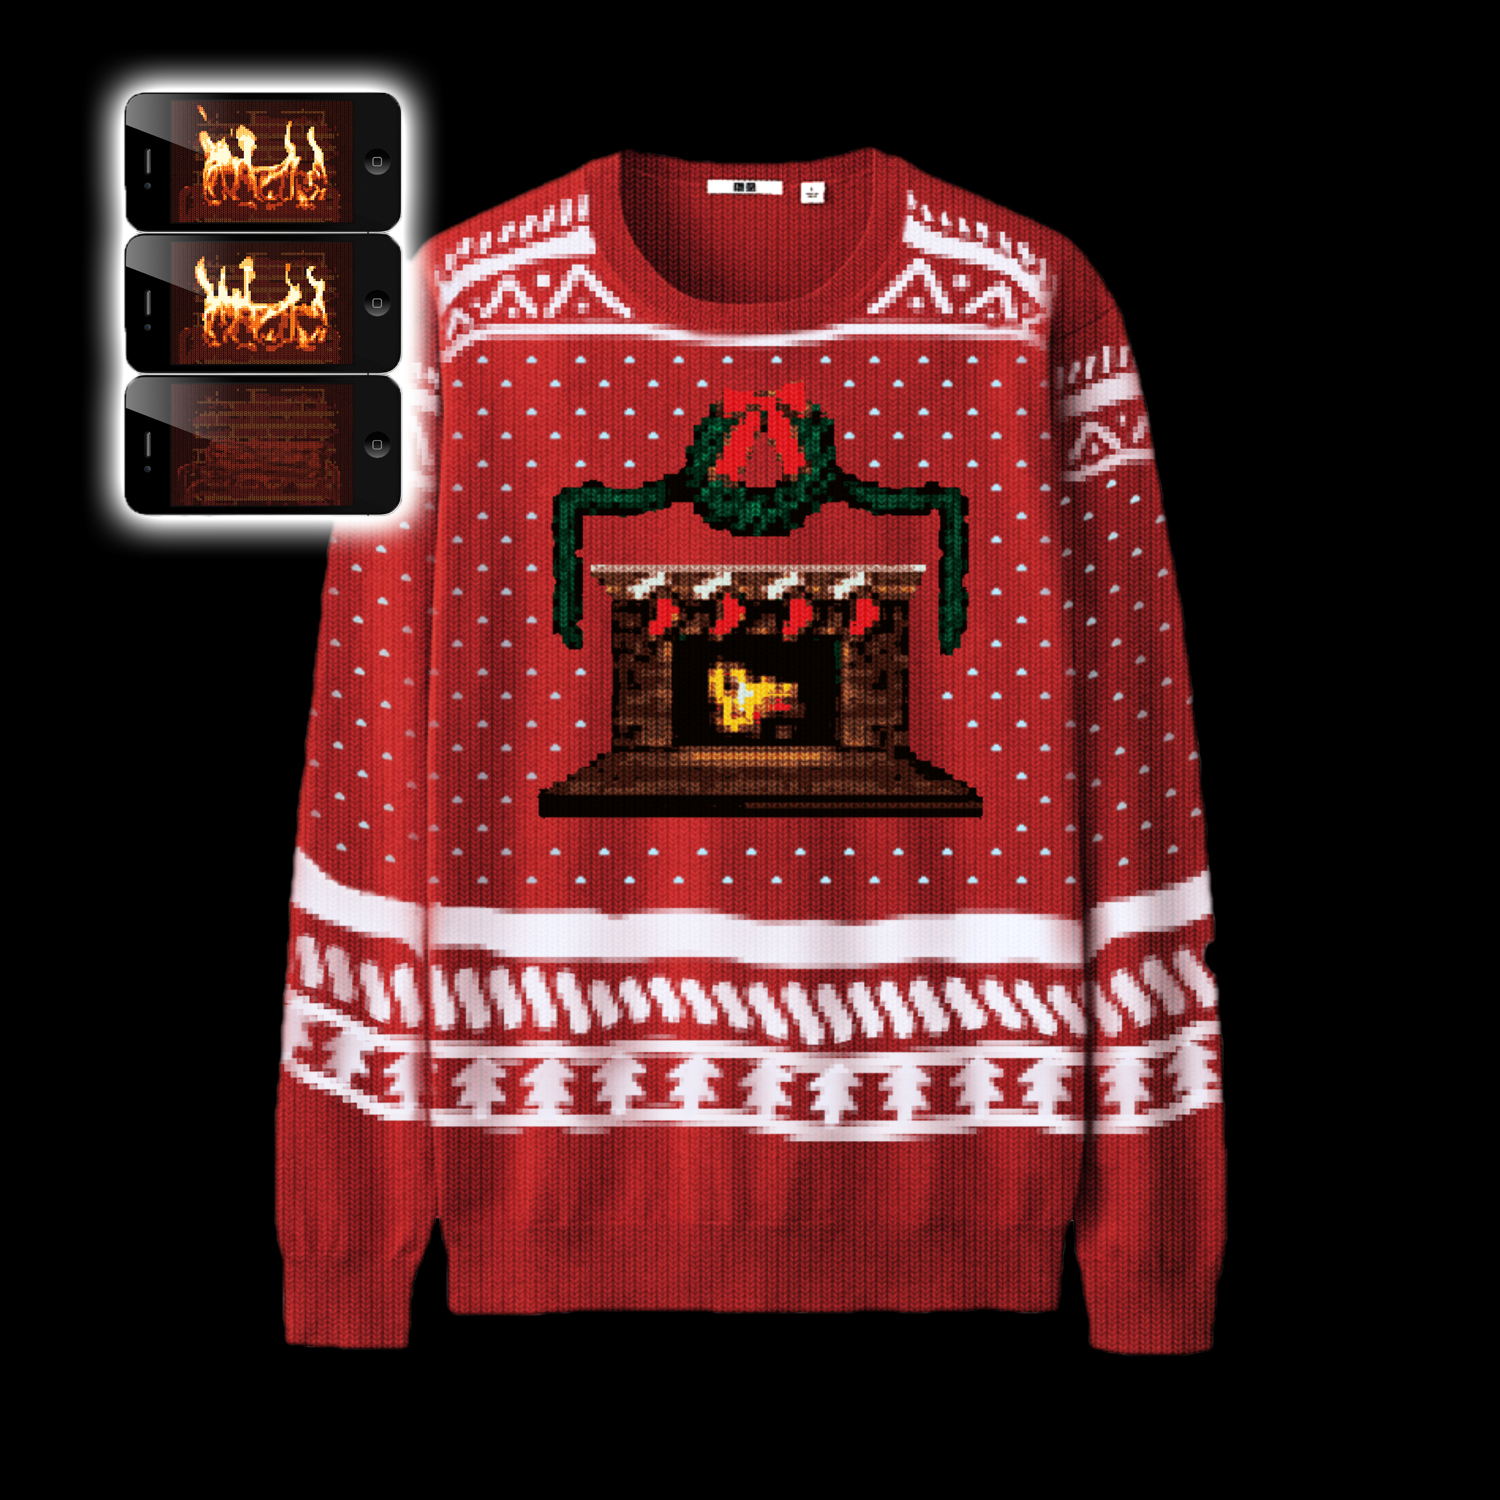 I'm dreaming of a digital Christmas: Christmas jumpers featuring ...